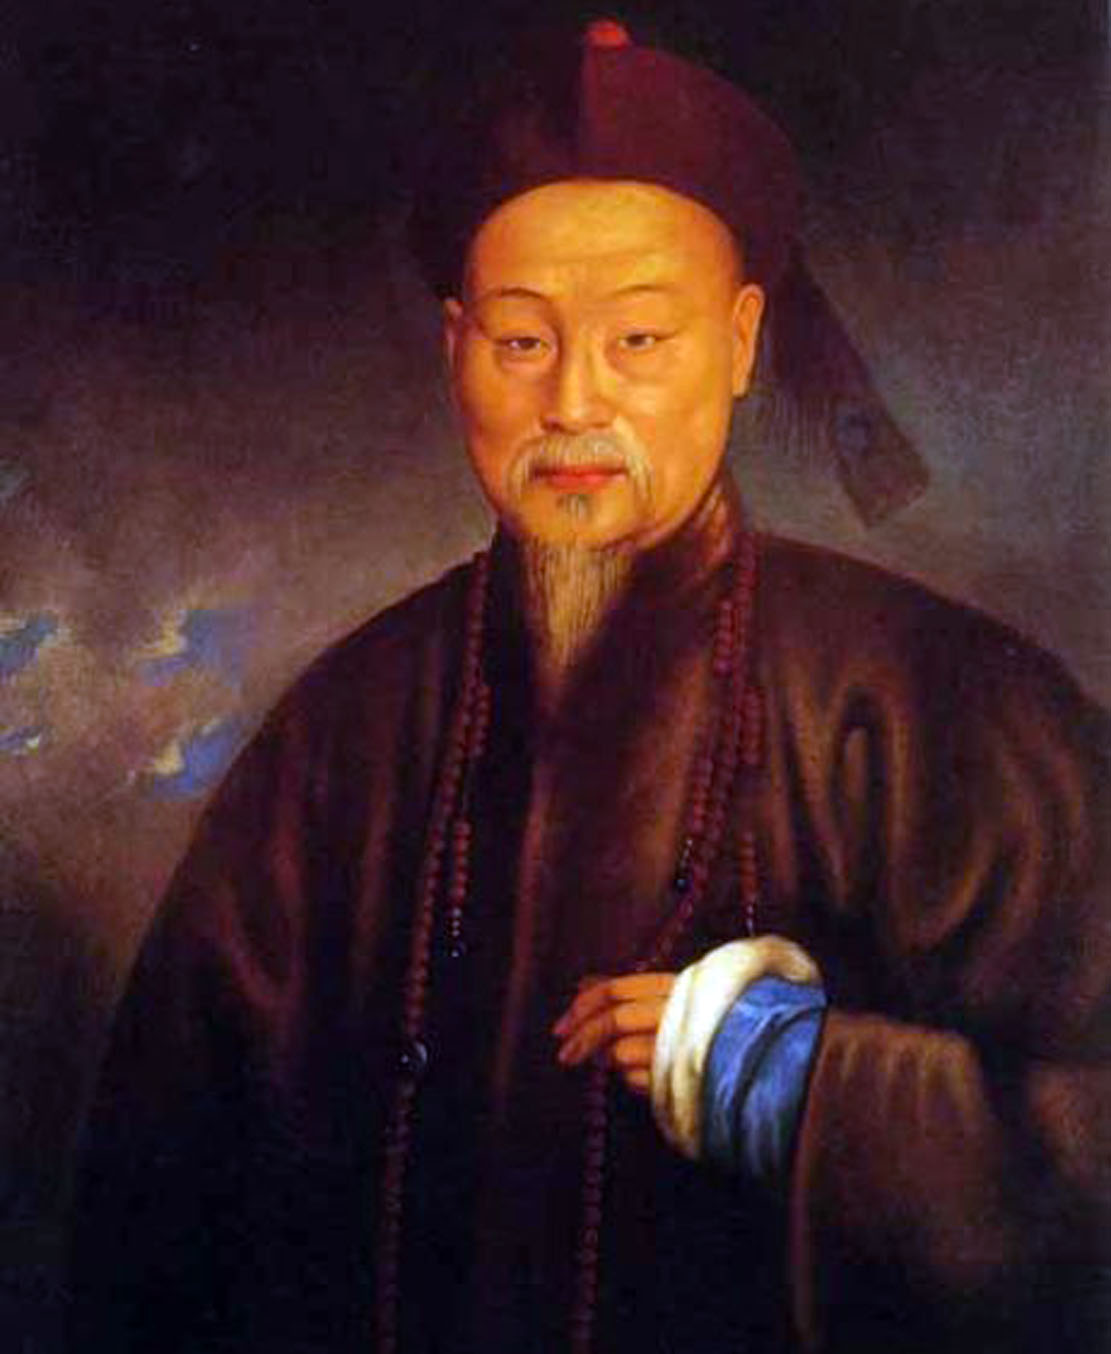 Lin Zexu was left with the task of shutting down the opium trade